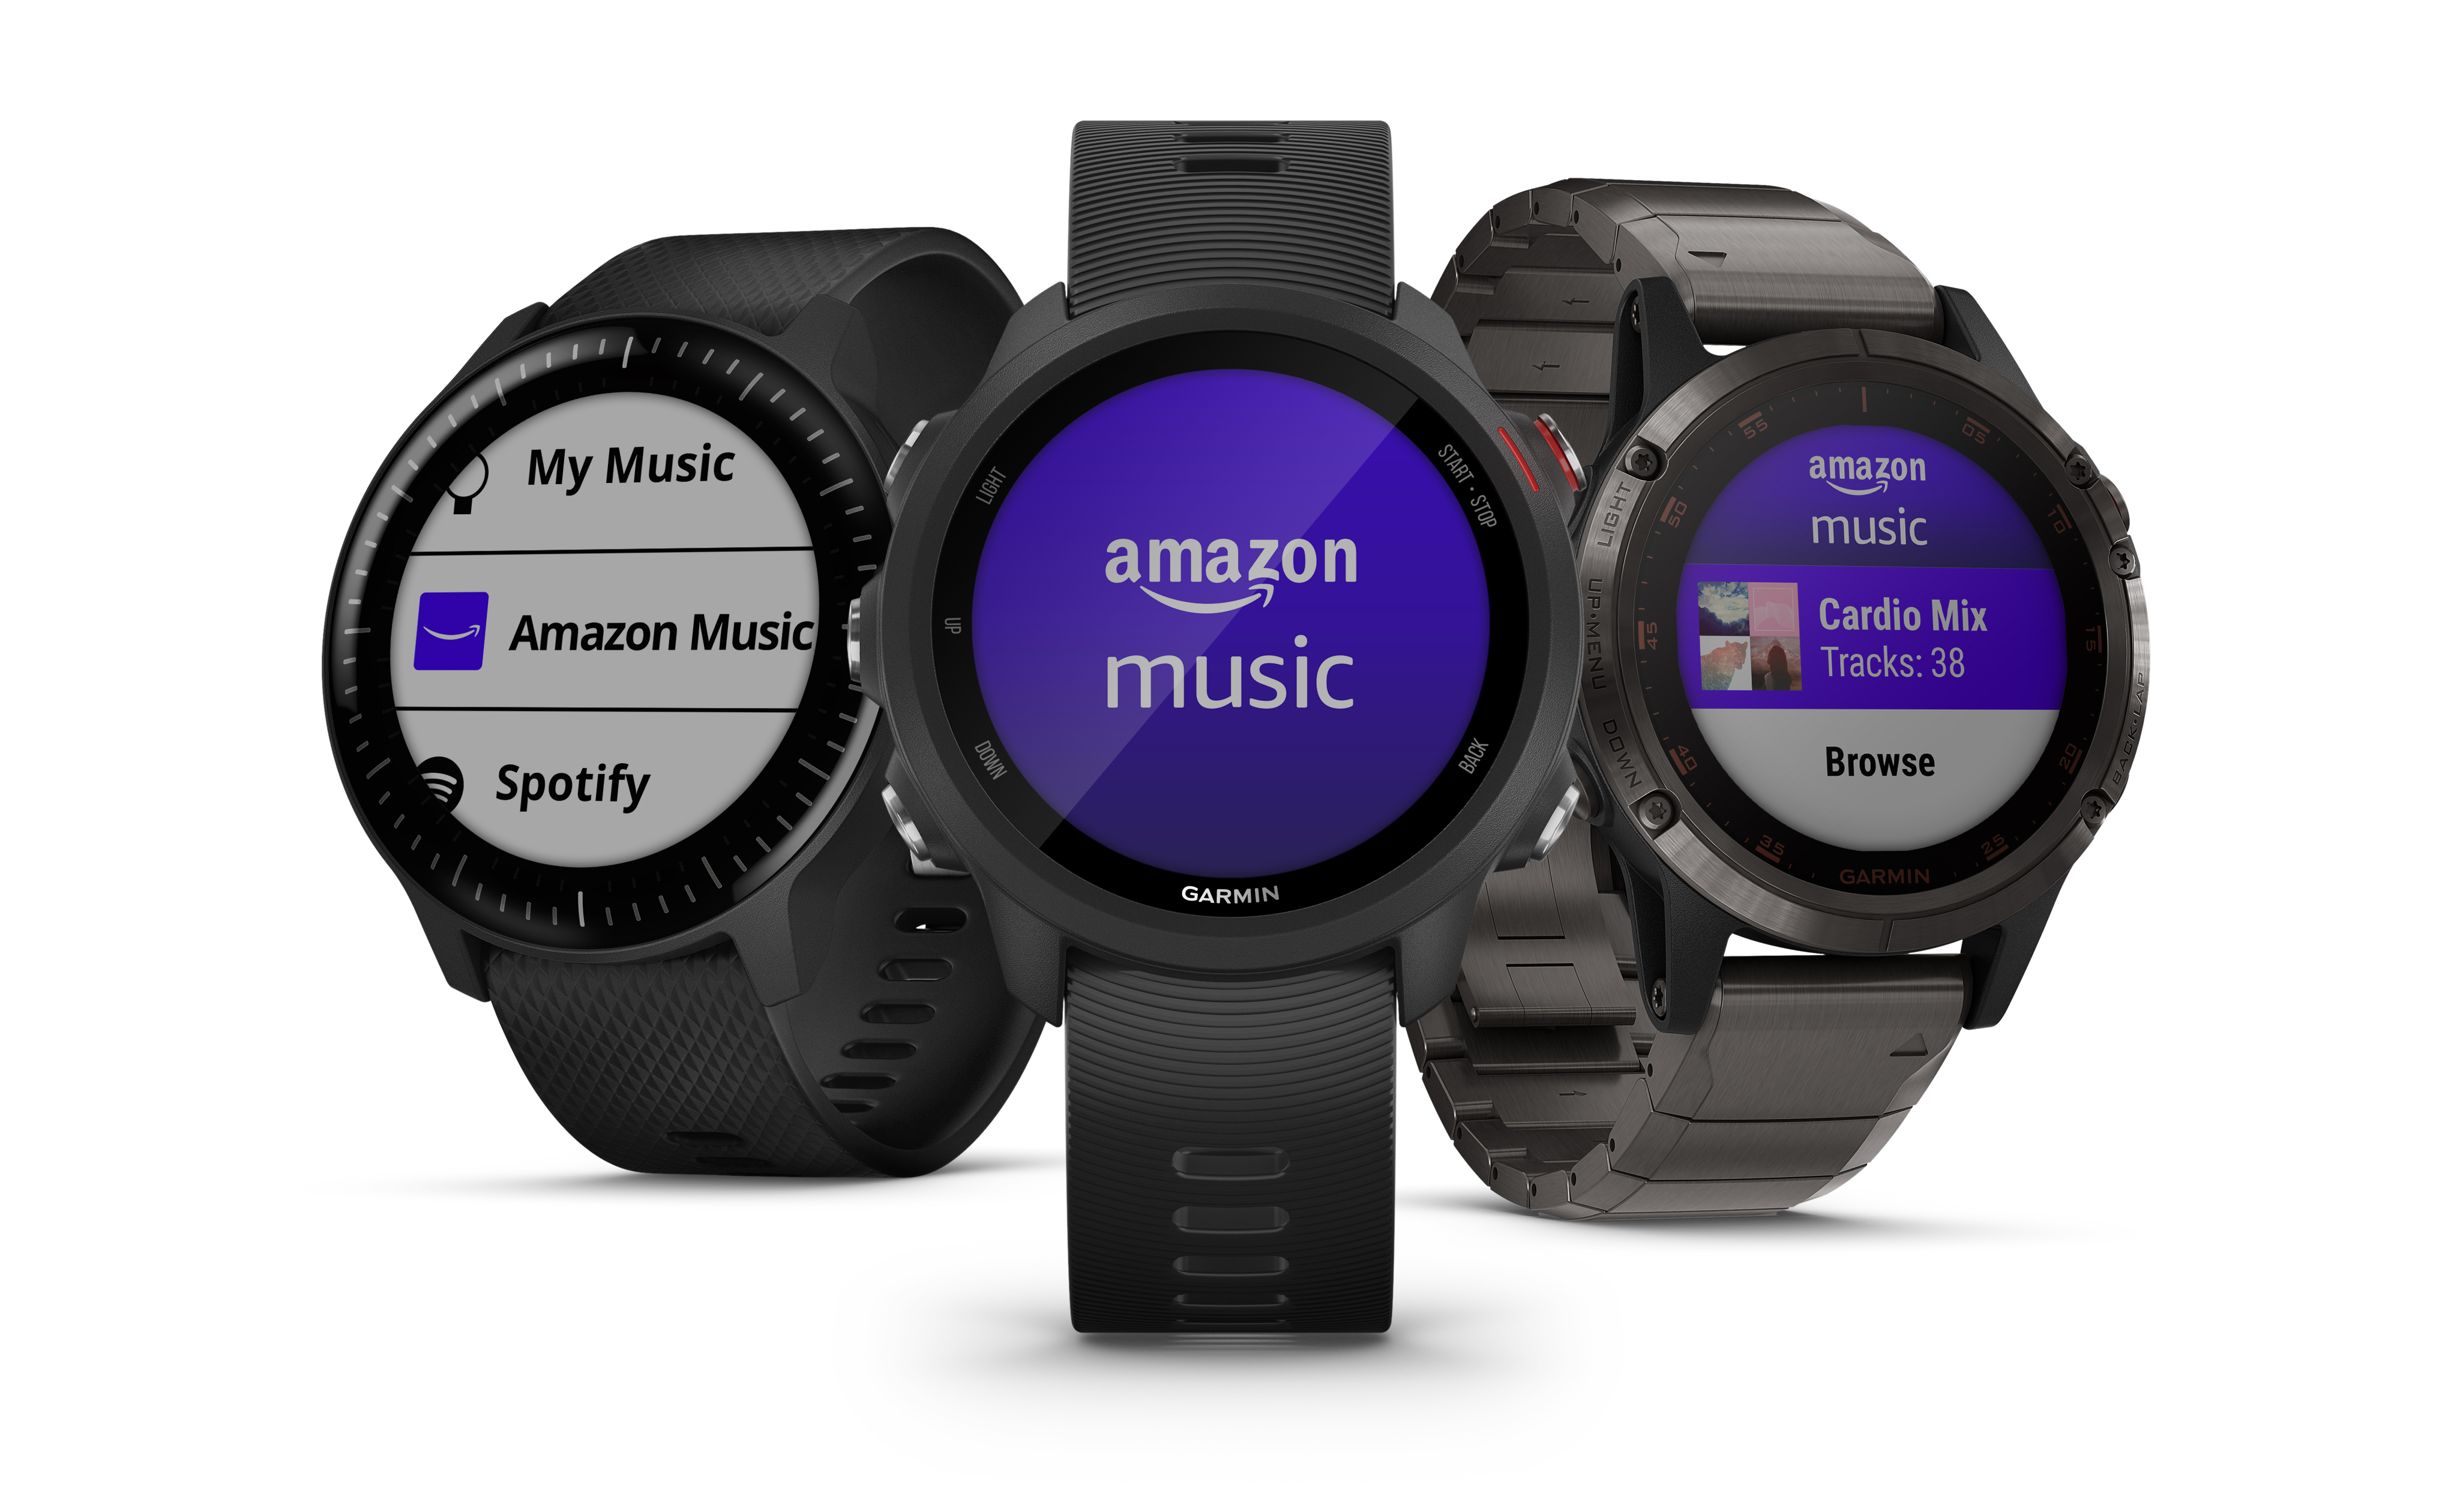 Amazon Music gets its first smartwatch app